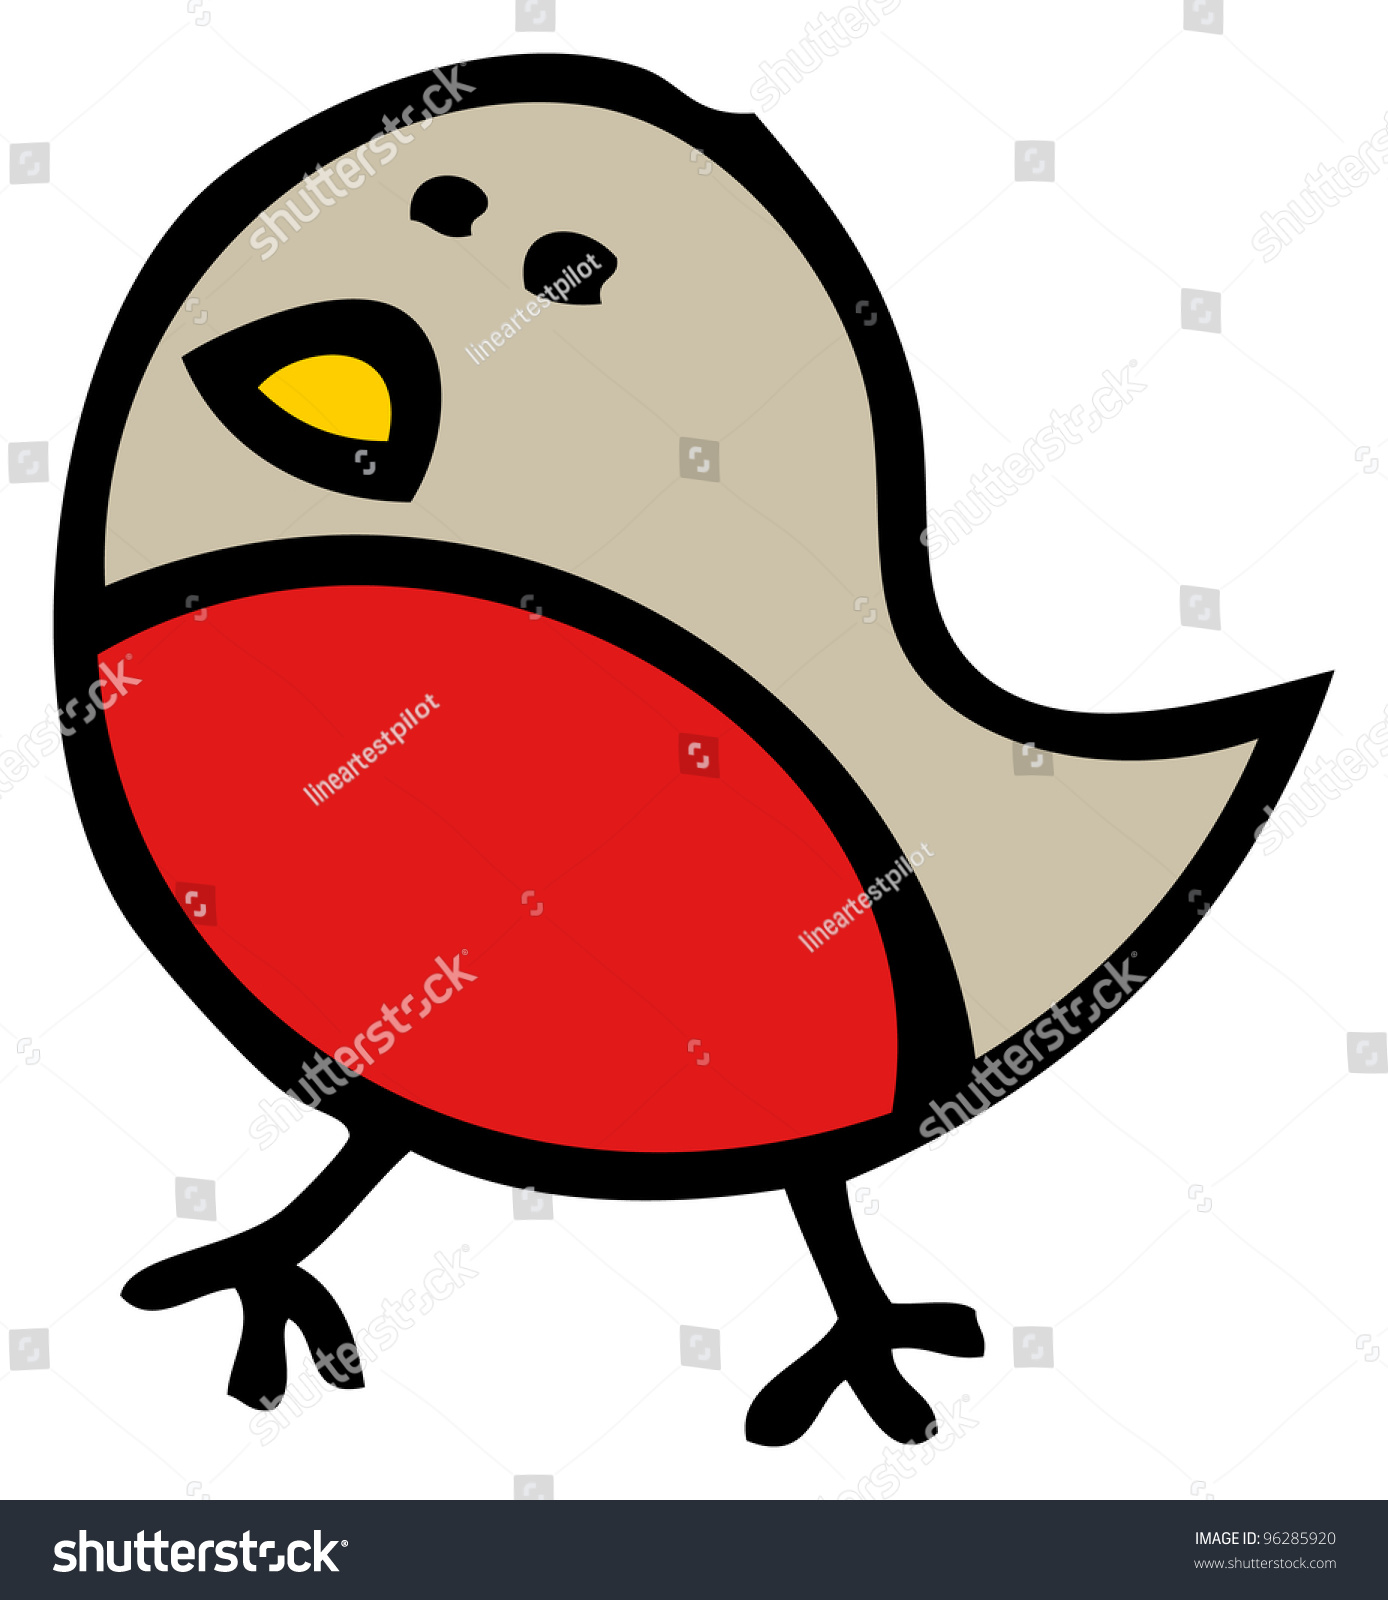 christmas robin cartoon stock illustration 96285920 https www shutterstock com image illustration christmas robin cartoon 96285920